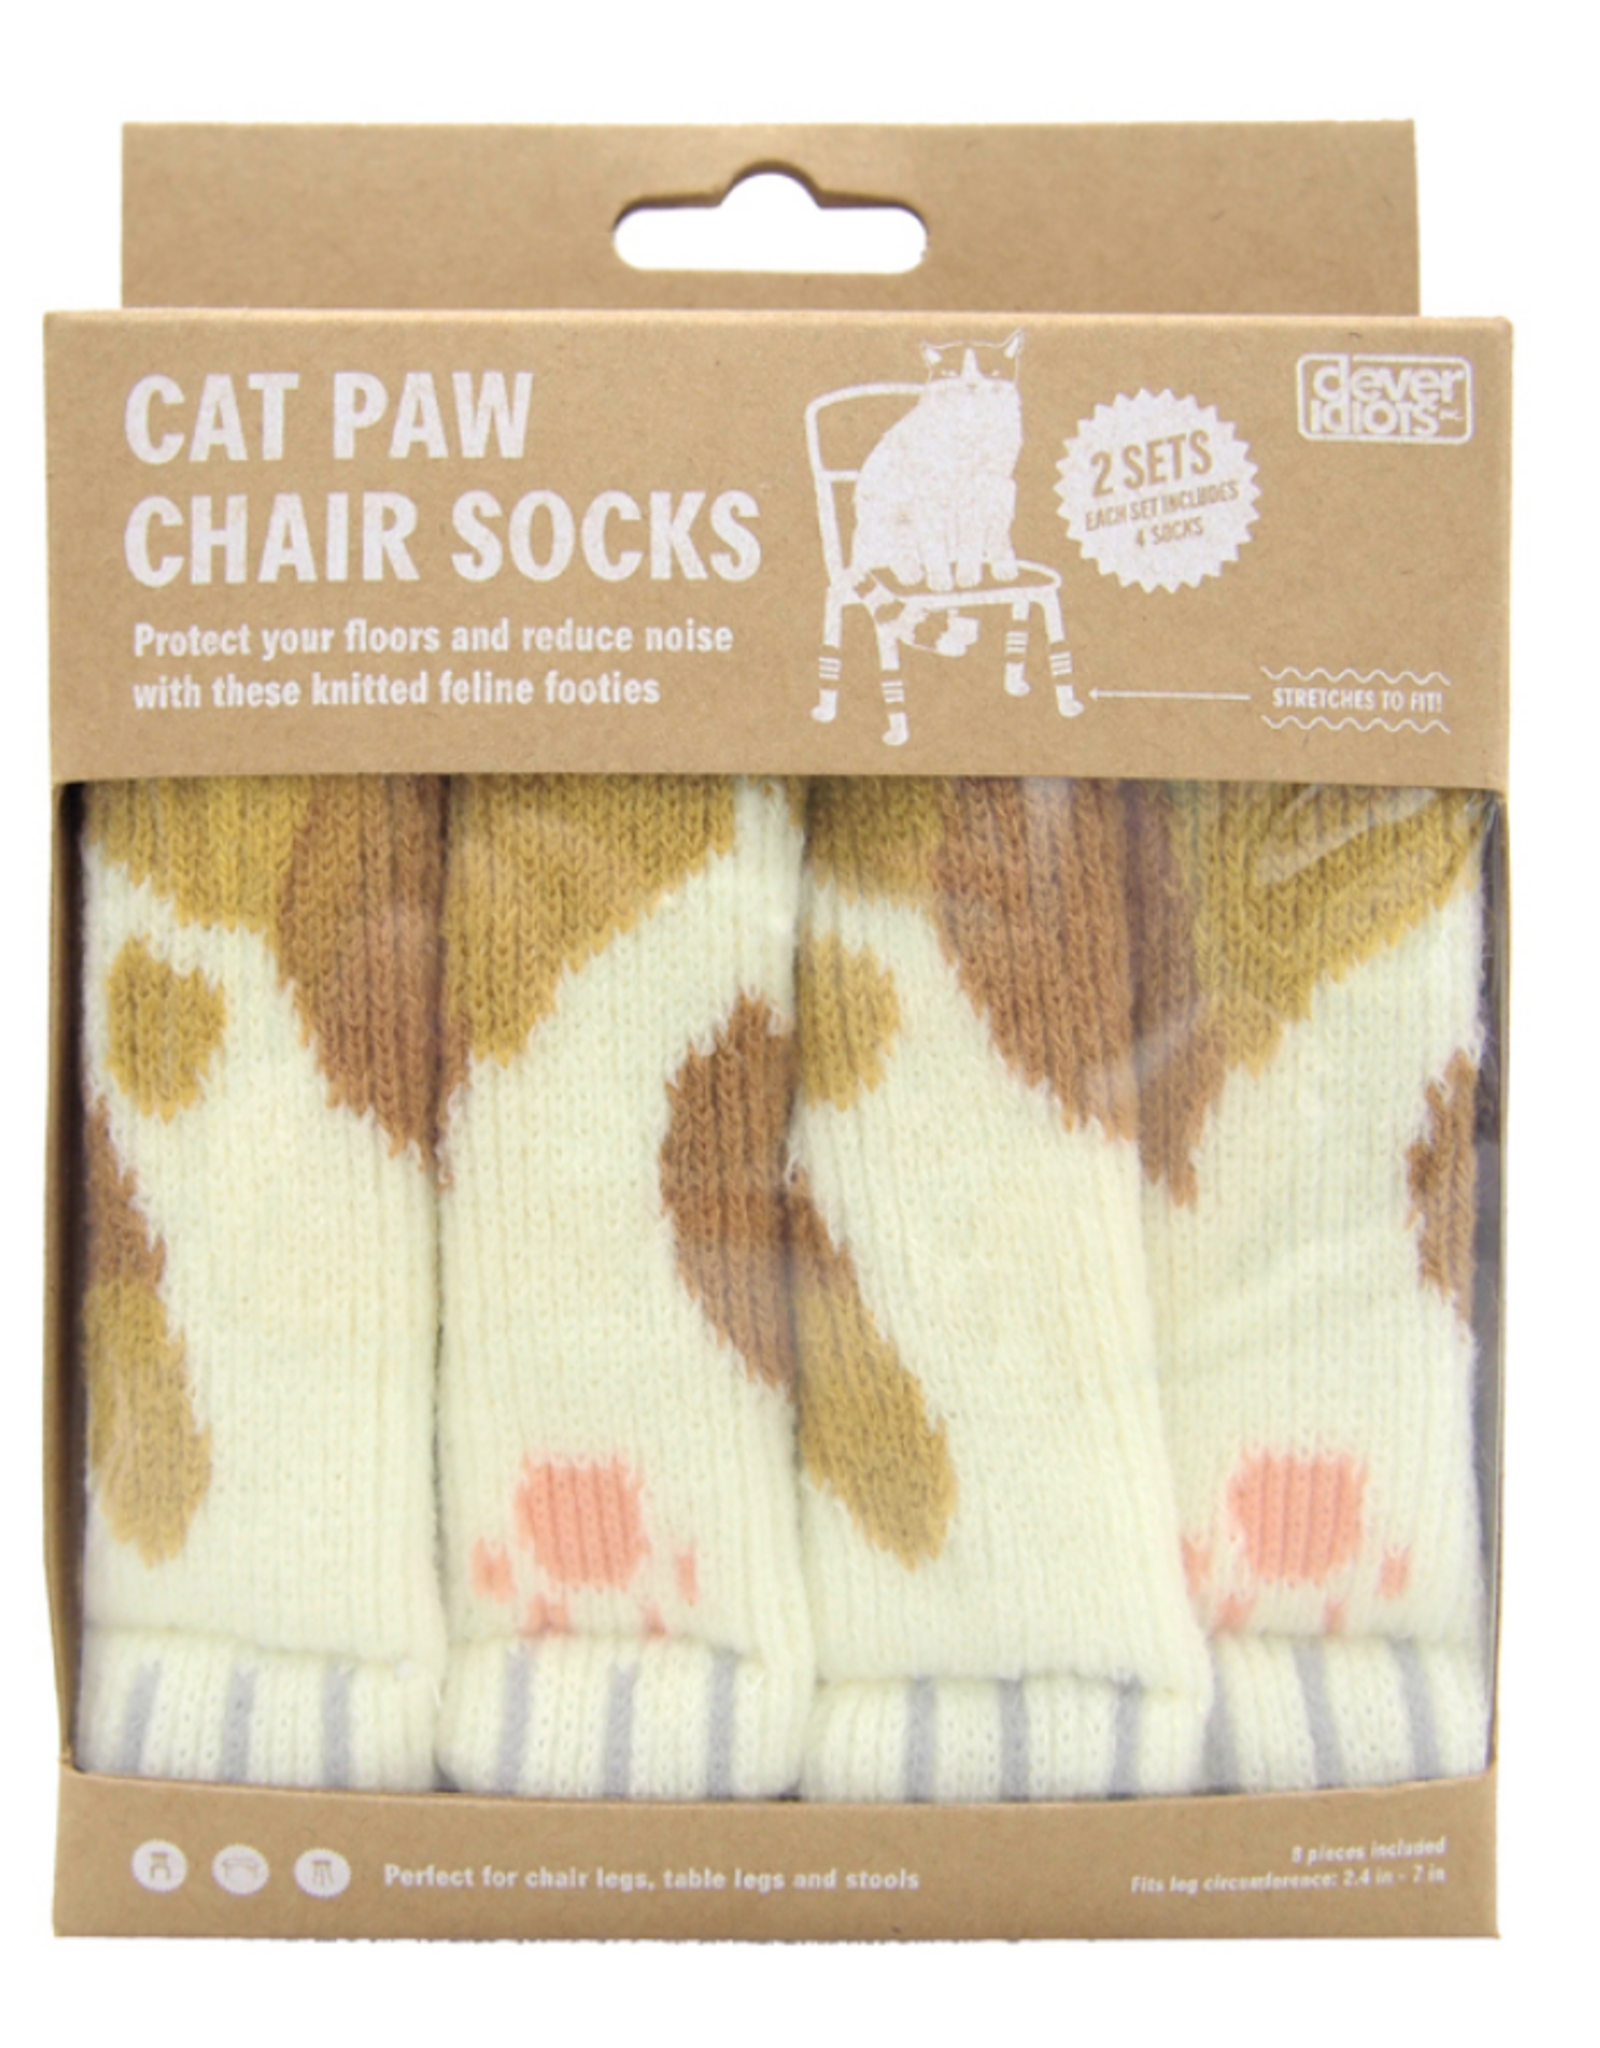 Cat Paw Chair Socks - Orange Calico